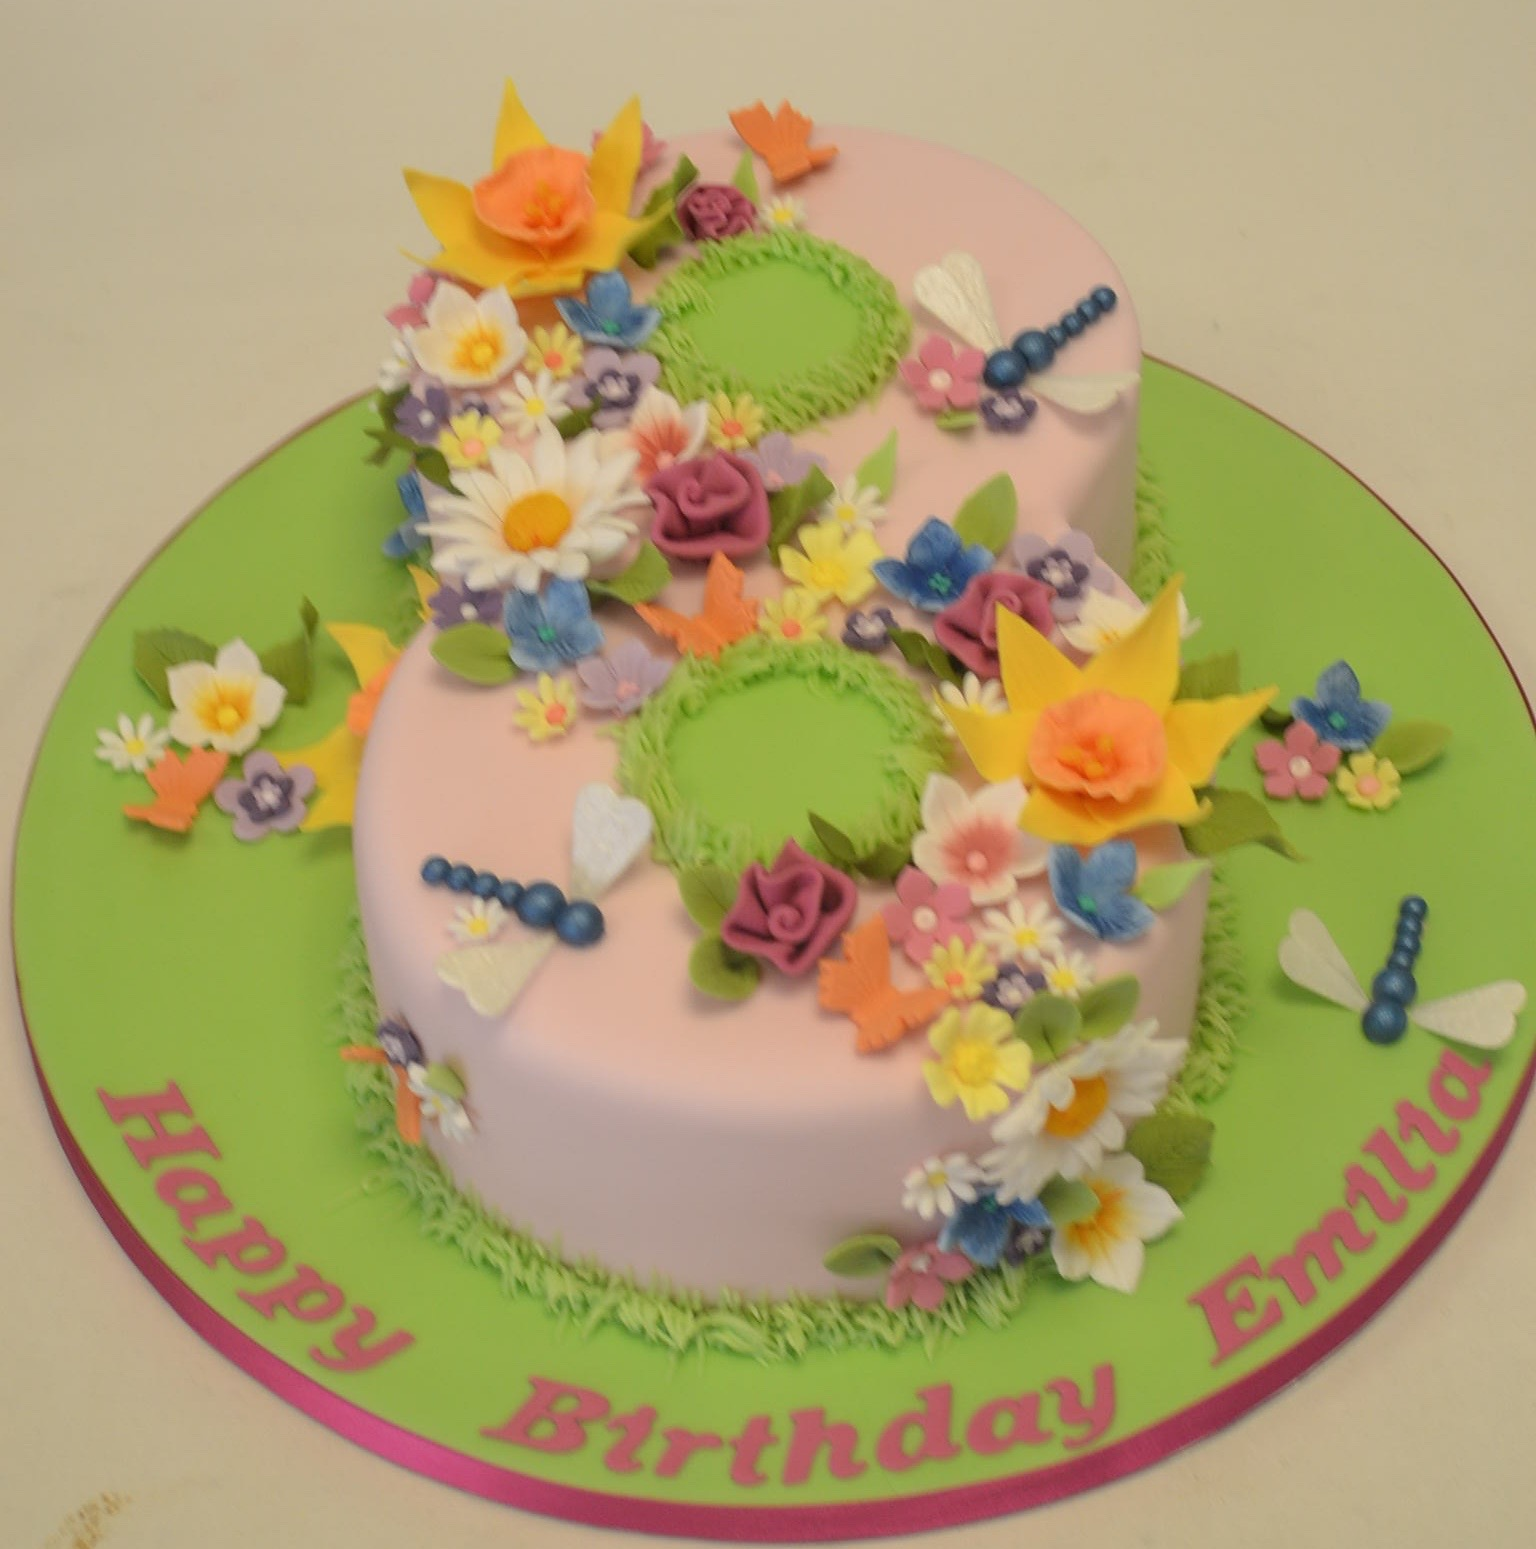 10 8 Shaped Cakes For Girls Photo Number 8 Cake Number 8 Birthday